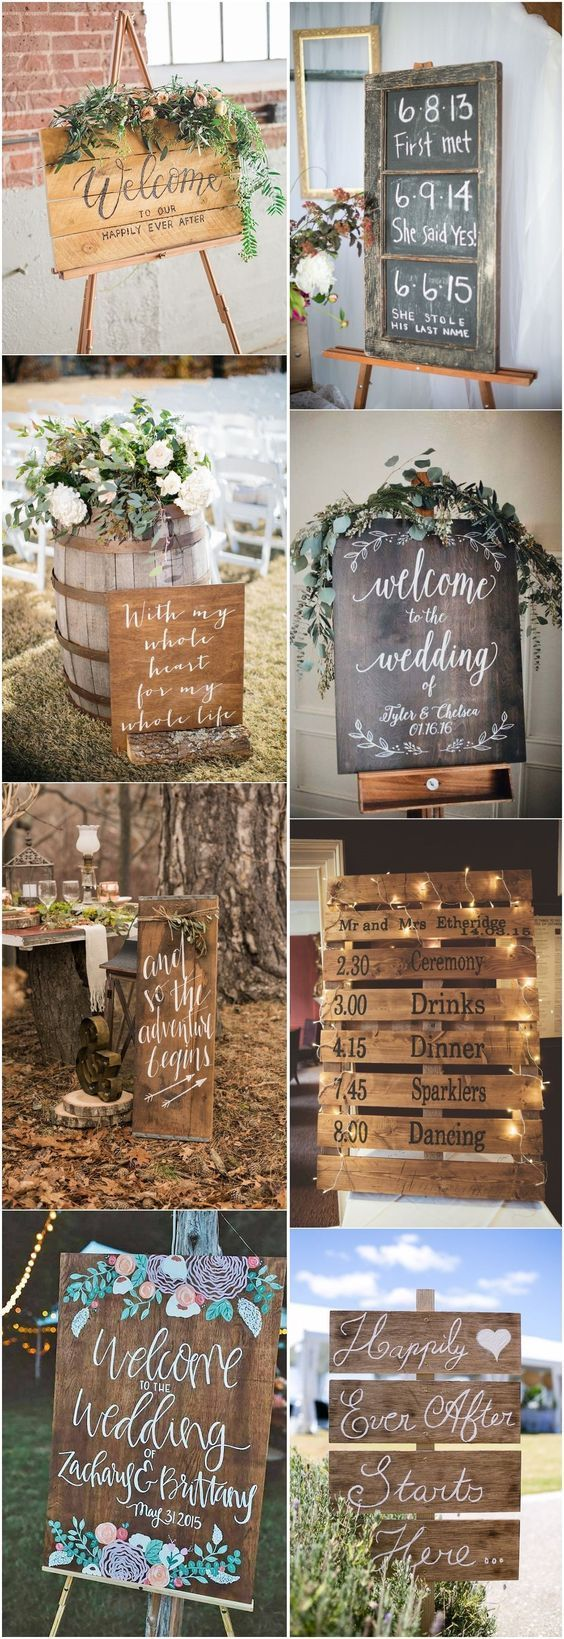 18 Rustic Budget-Friendly Rustic Wedding Signs Ideas